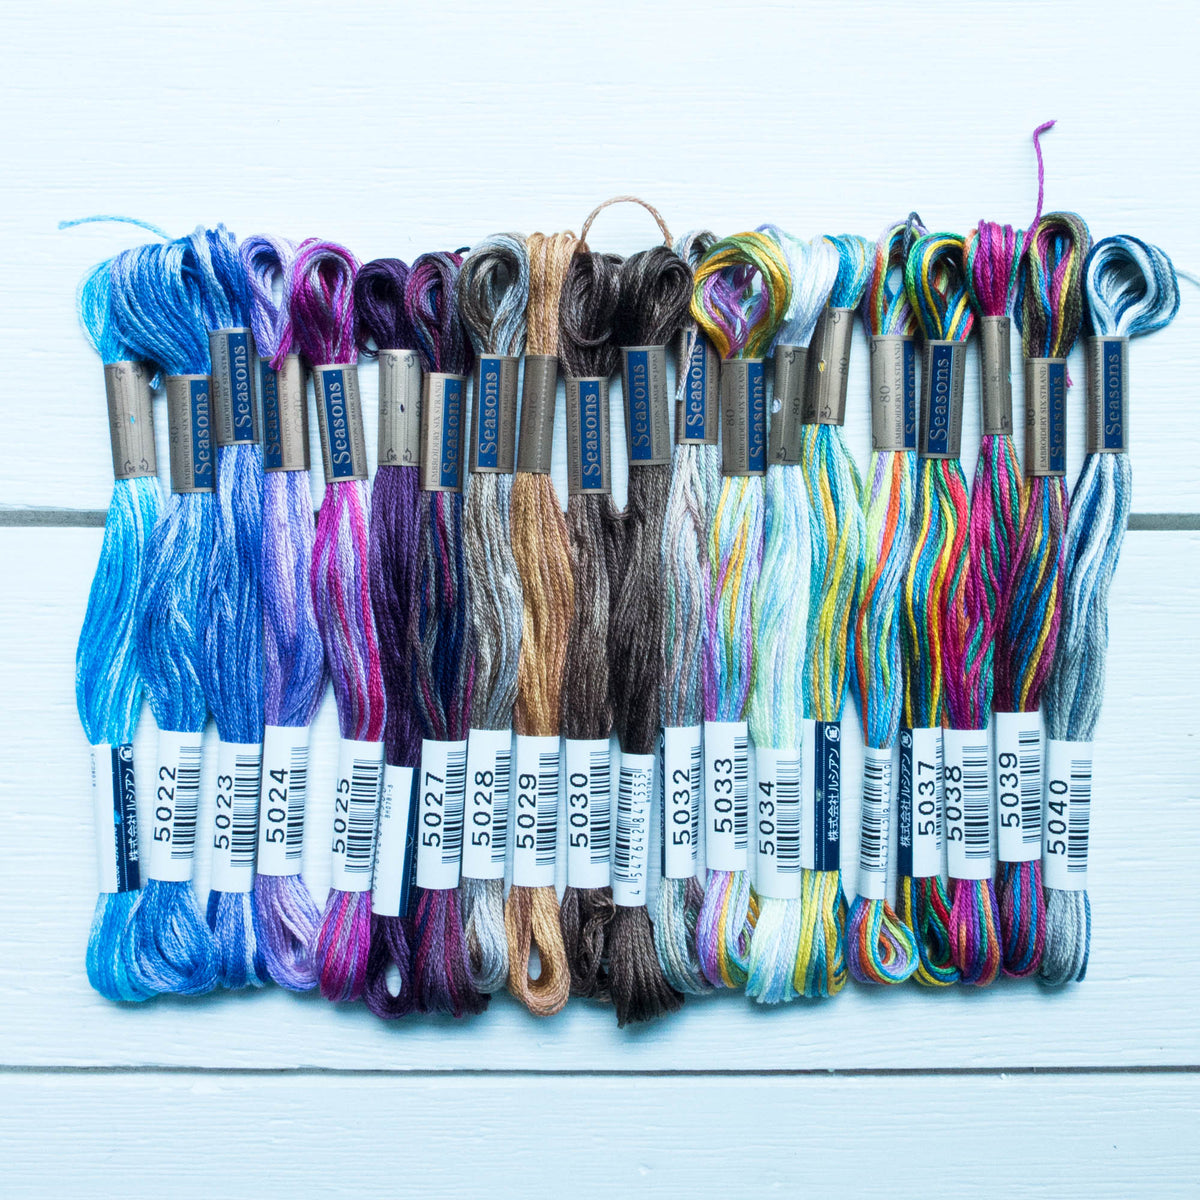 Cosmo Seasons Variegated Embroidery Floss Set - 5021-5040 Floss - Snuggly Monkey